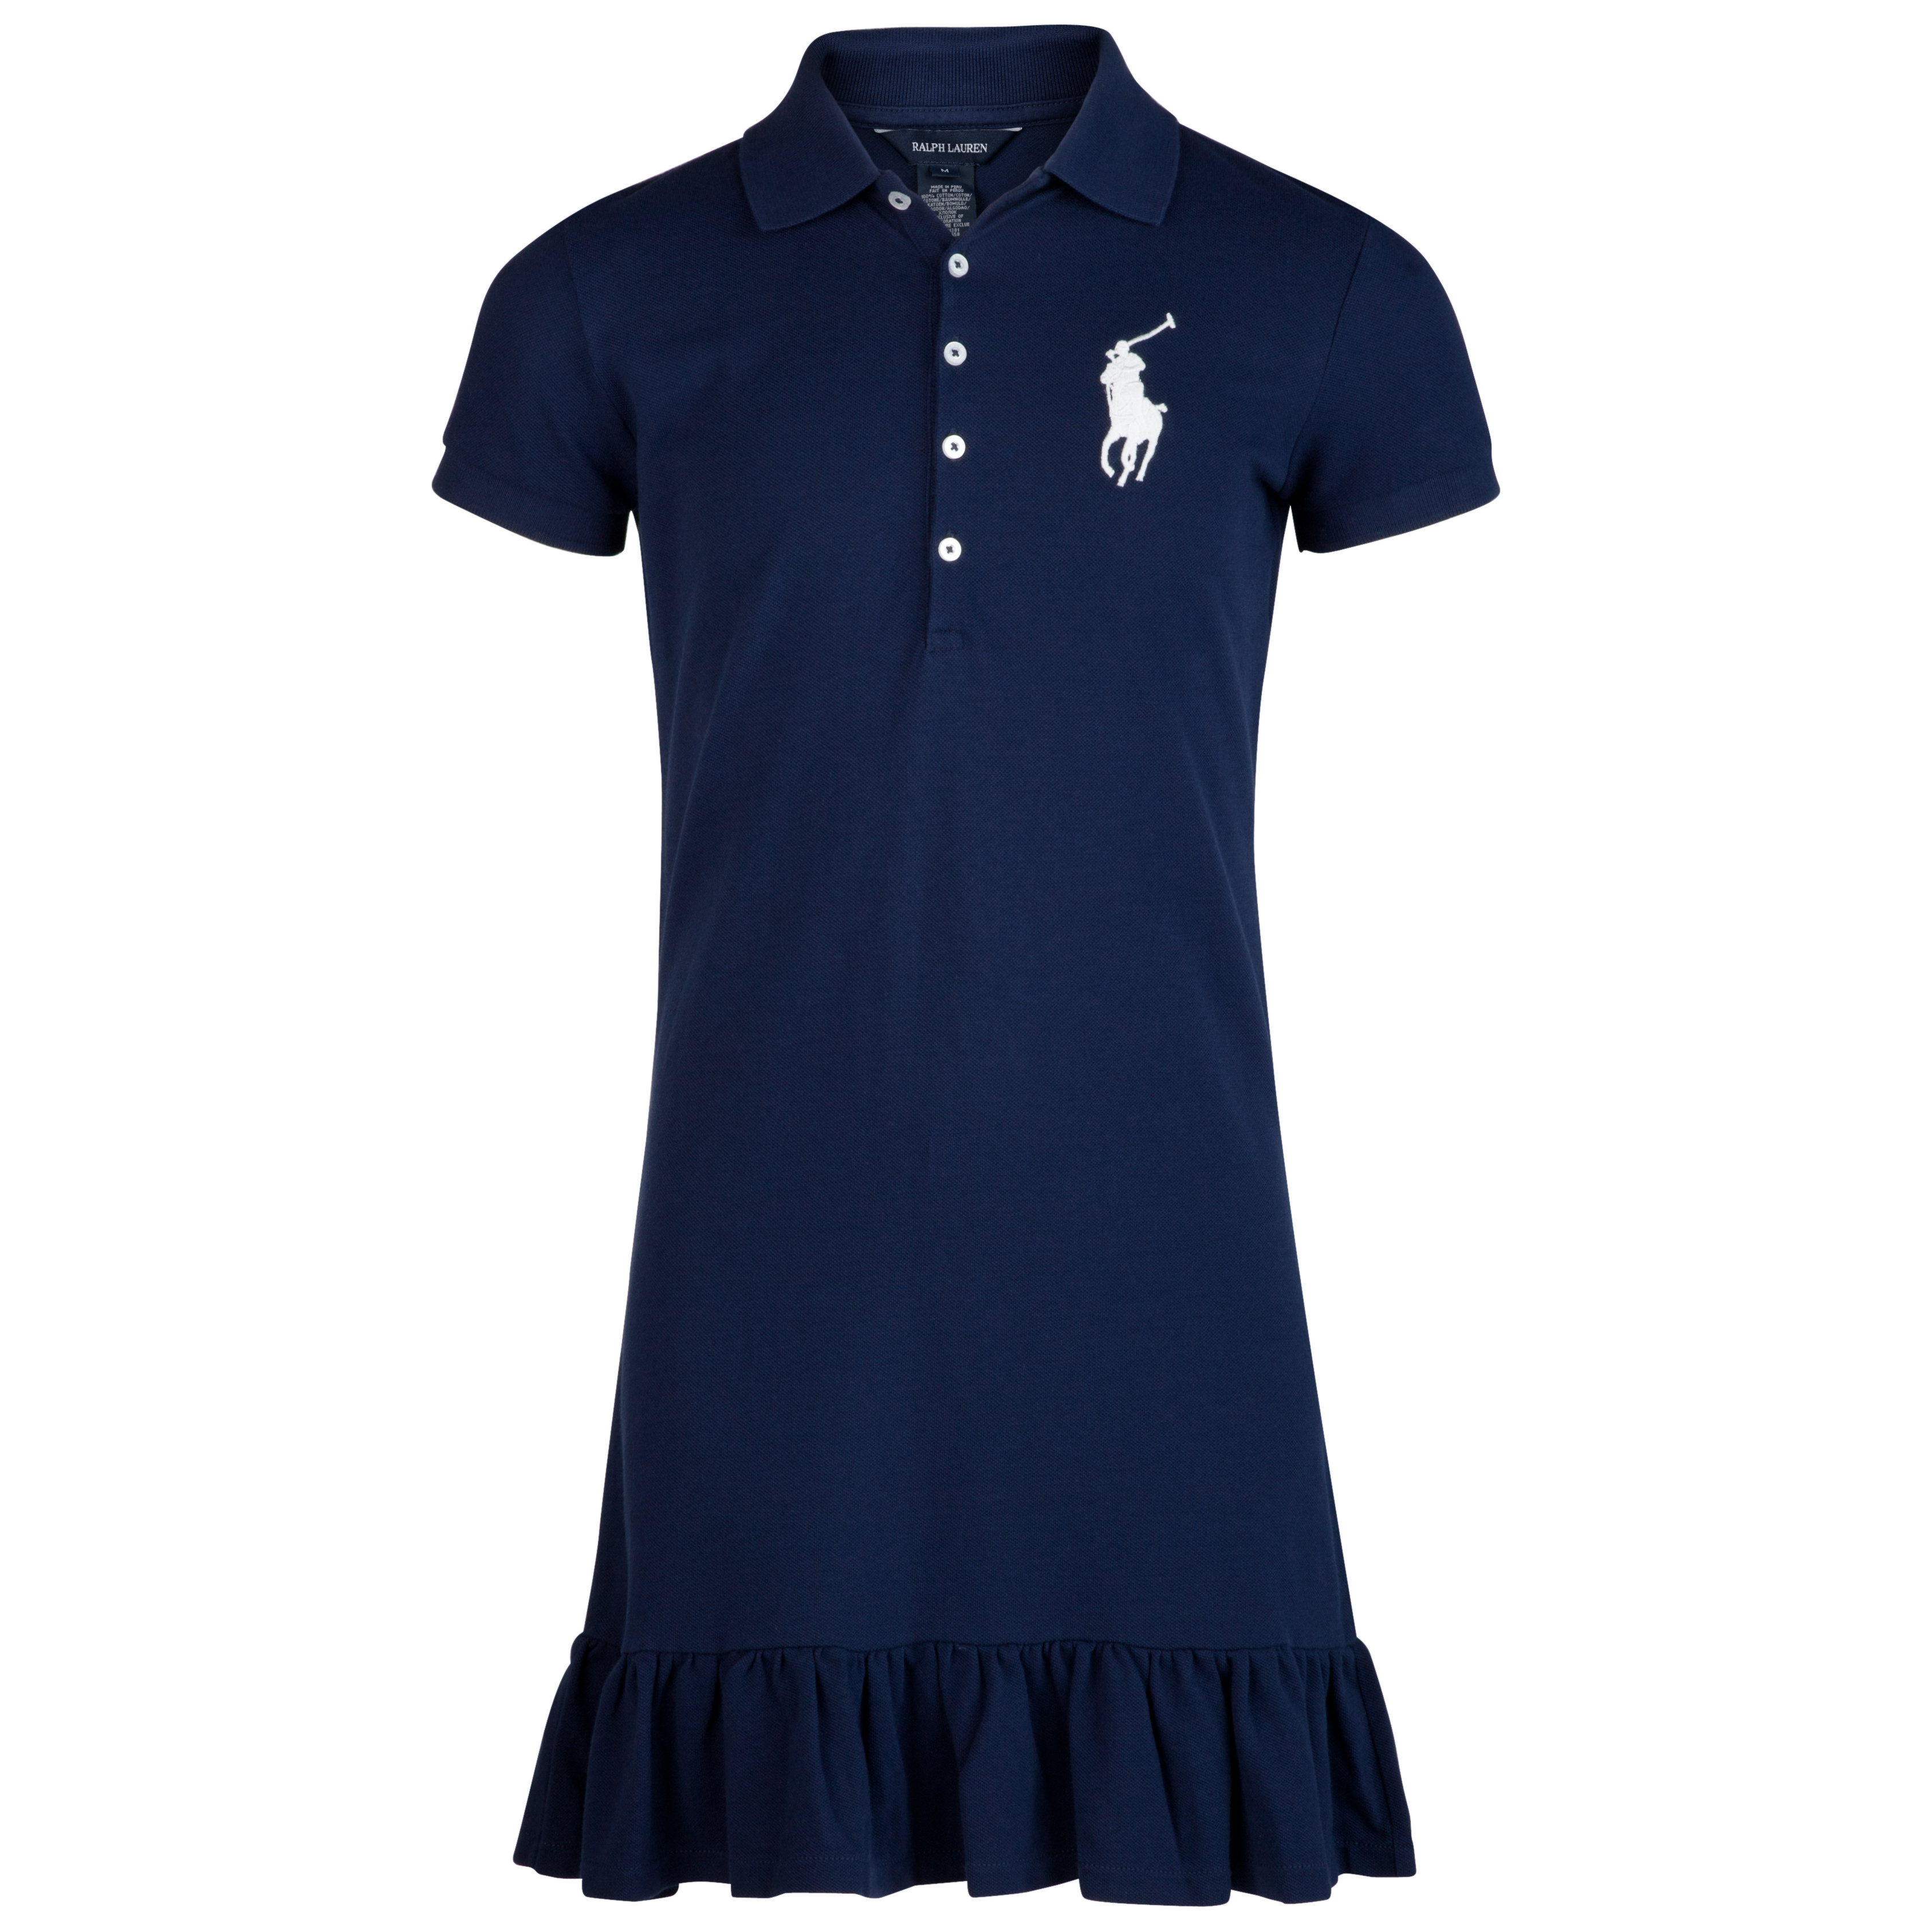 Polo Ralph Lauren Wimbledon Dress Mesh Polo - French Navy - Older Girls